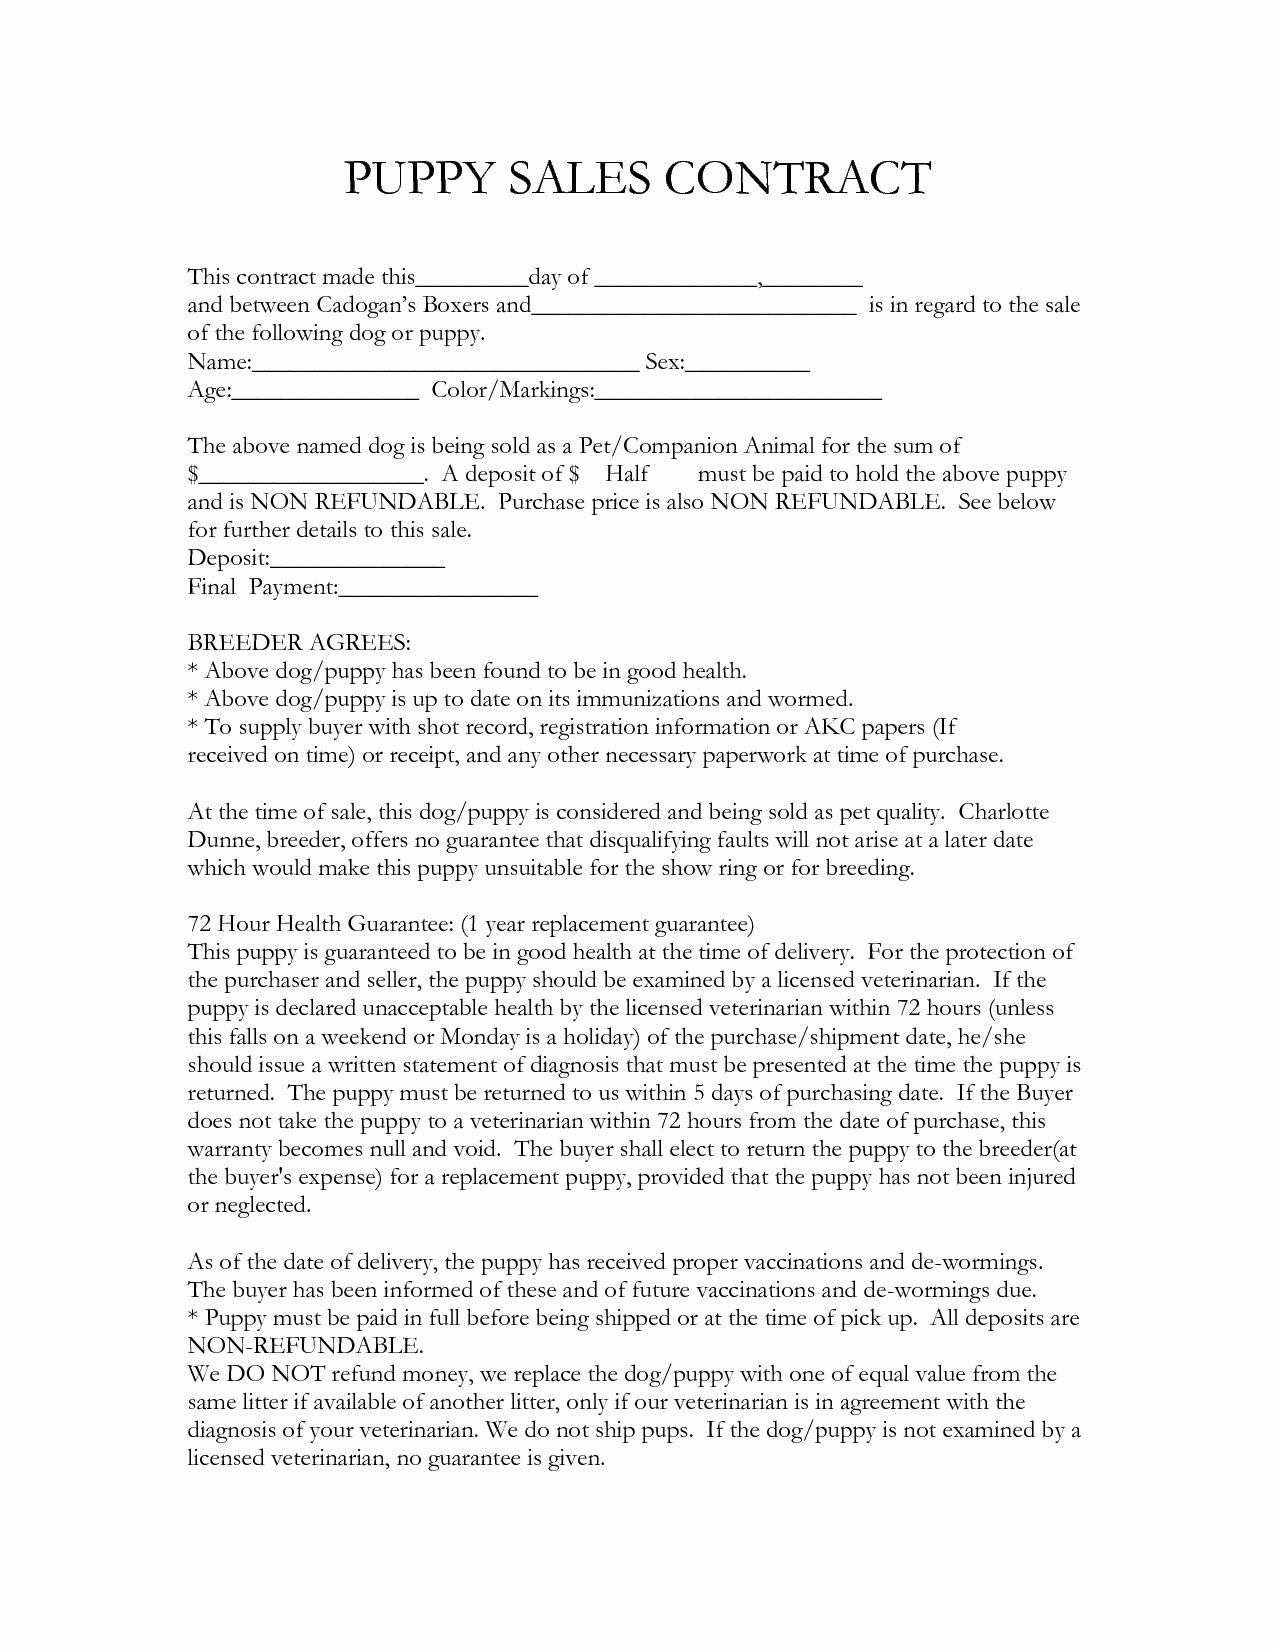 Dog Training Contract Template Beautiful Contract Template In 2020 Puppy Health Contract Template Dog Breeding Business